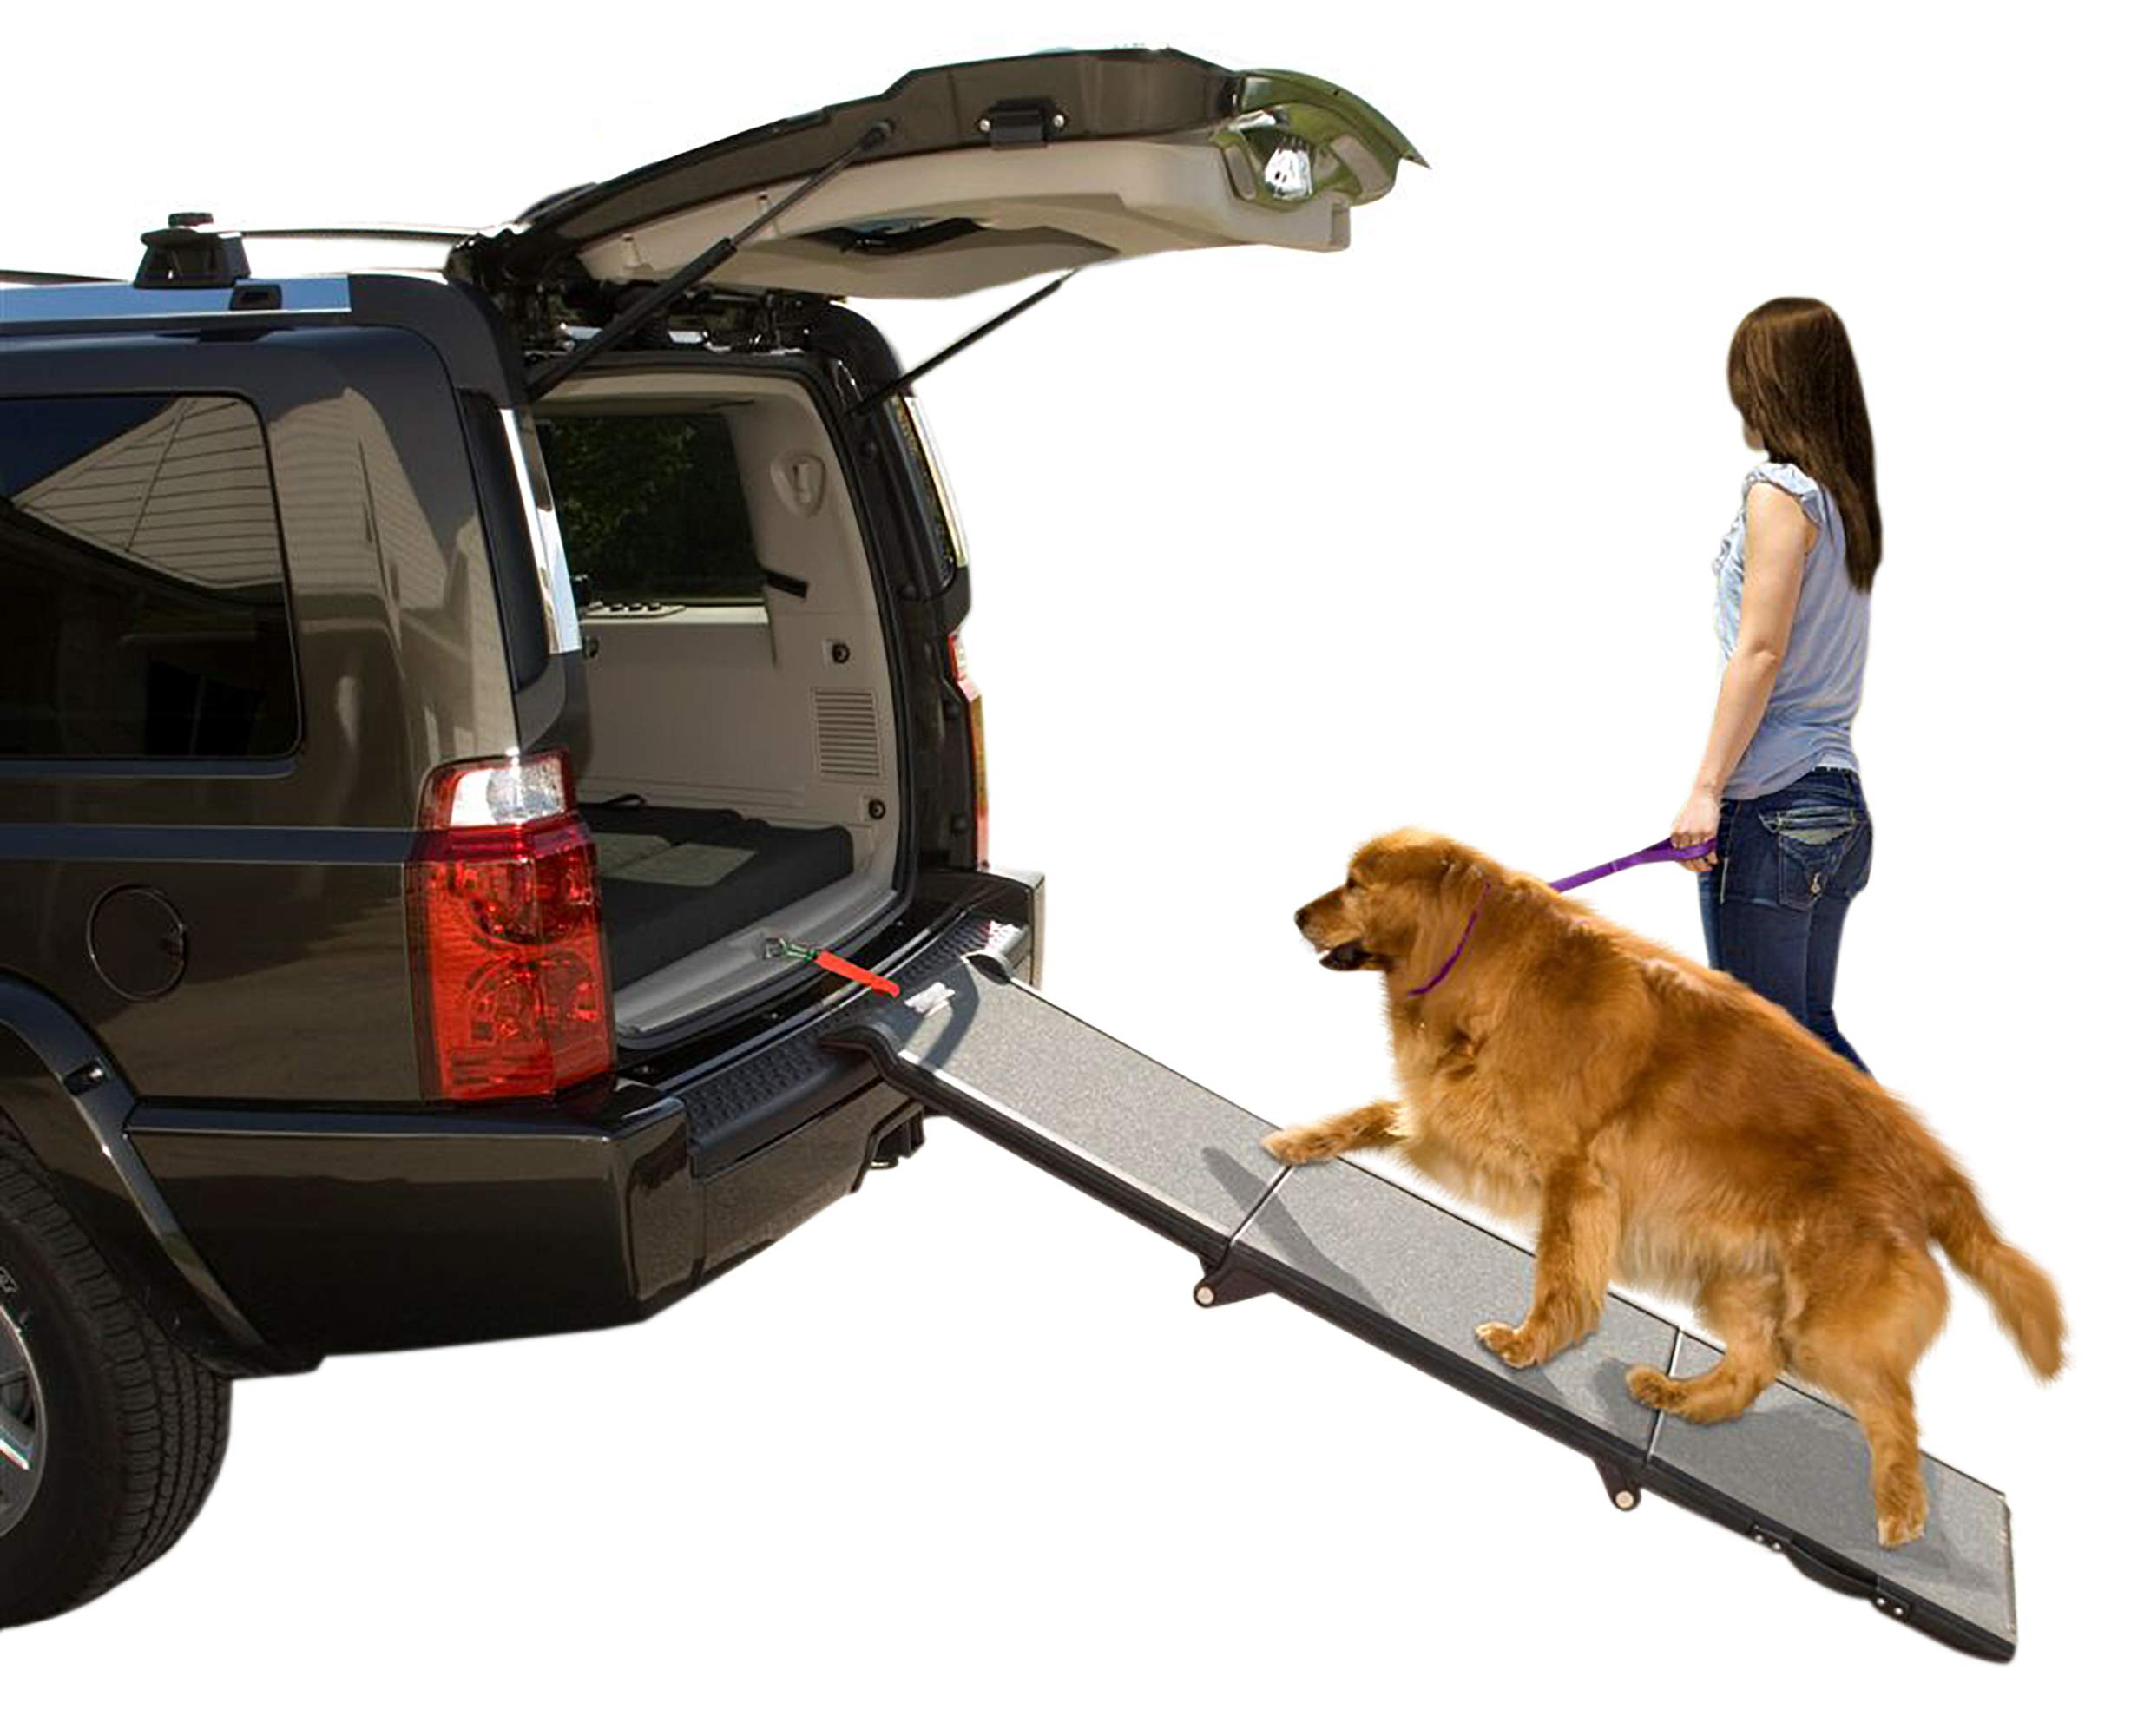 Pet Gear Tri-Fold Ramp 71 Inch Long Extra Wide Portable Pet Ramp for Dogs/Cats up to 200lbs, Patented Compact/Easy Fold with Safety Tether by Pet Gear